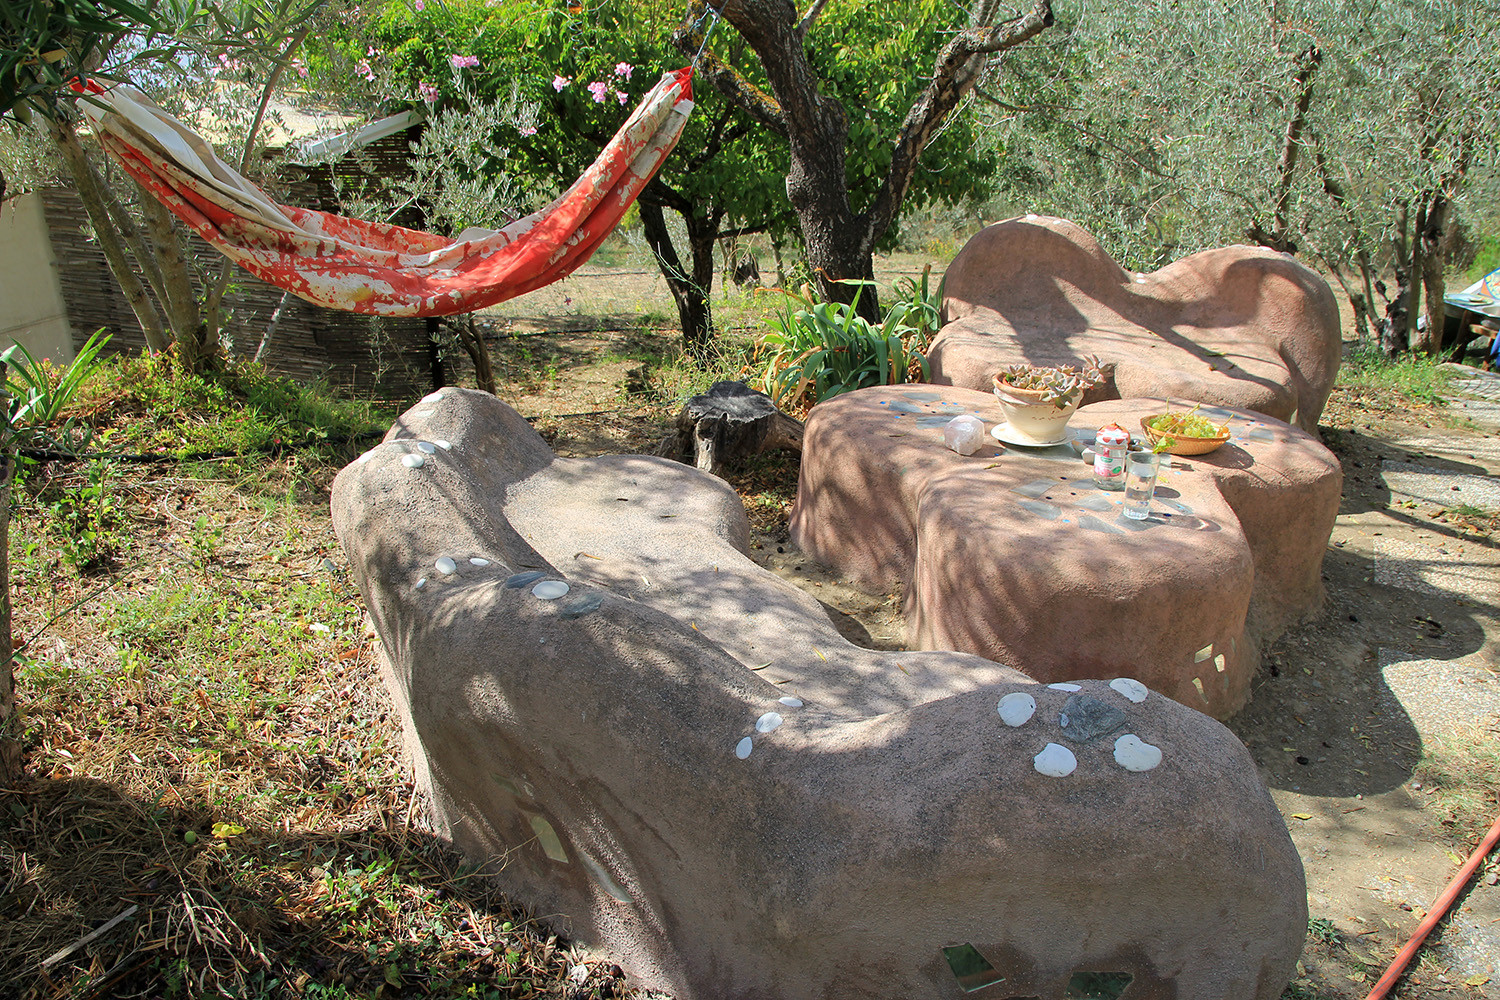 The Flintstone table and bench